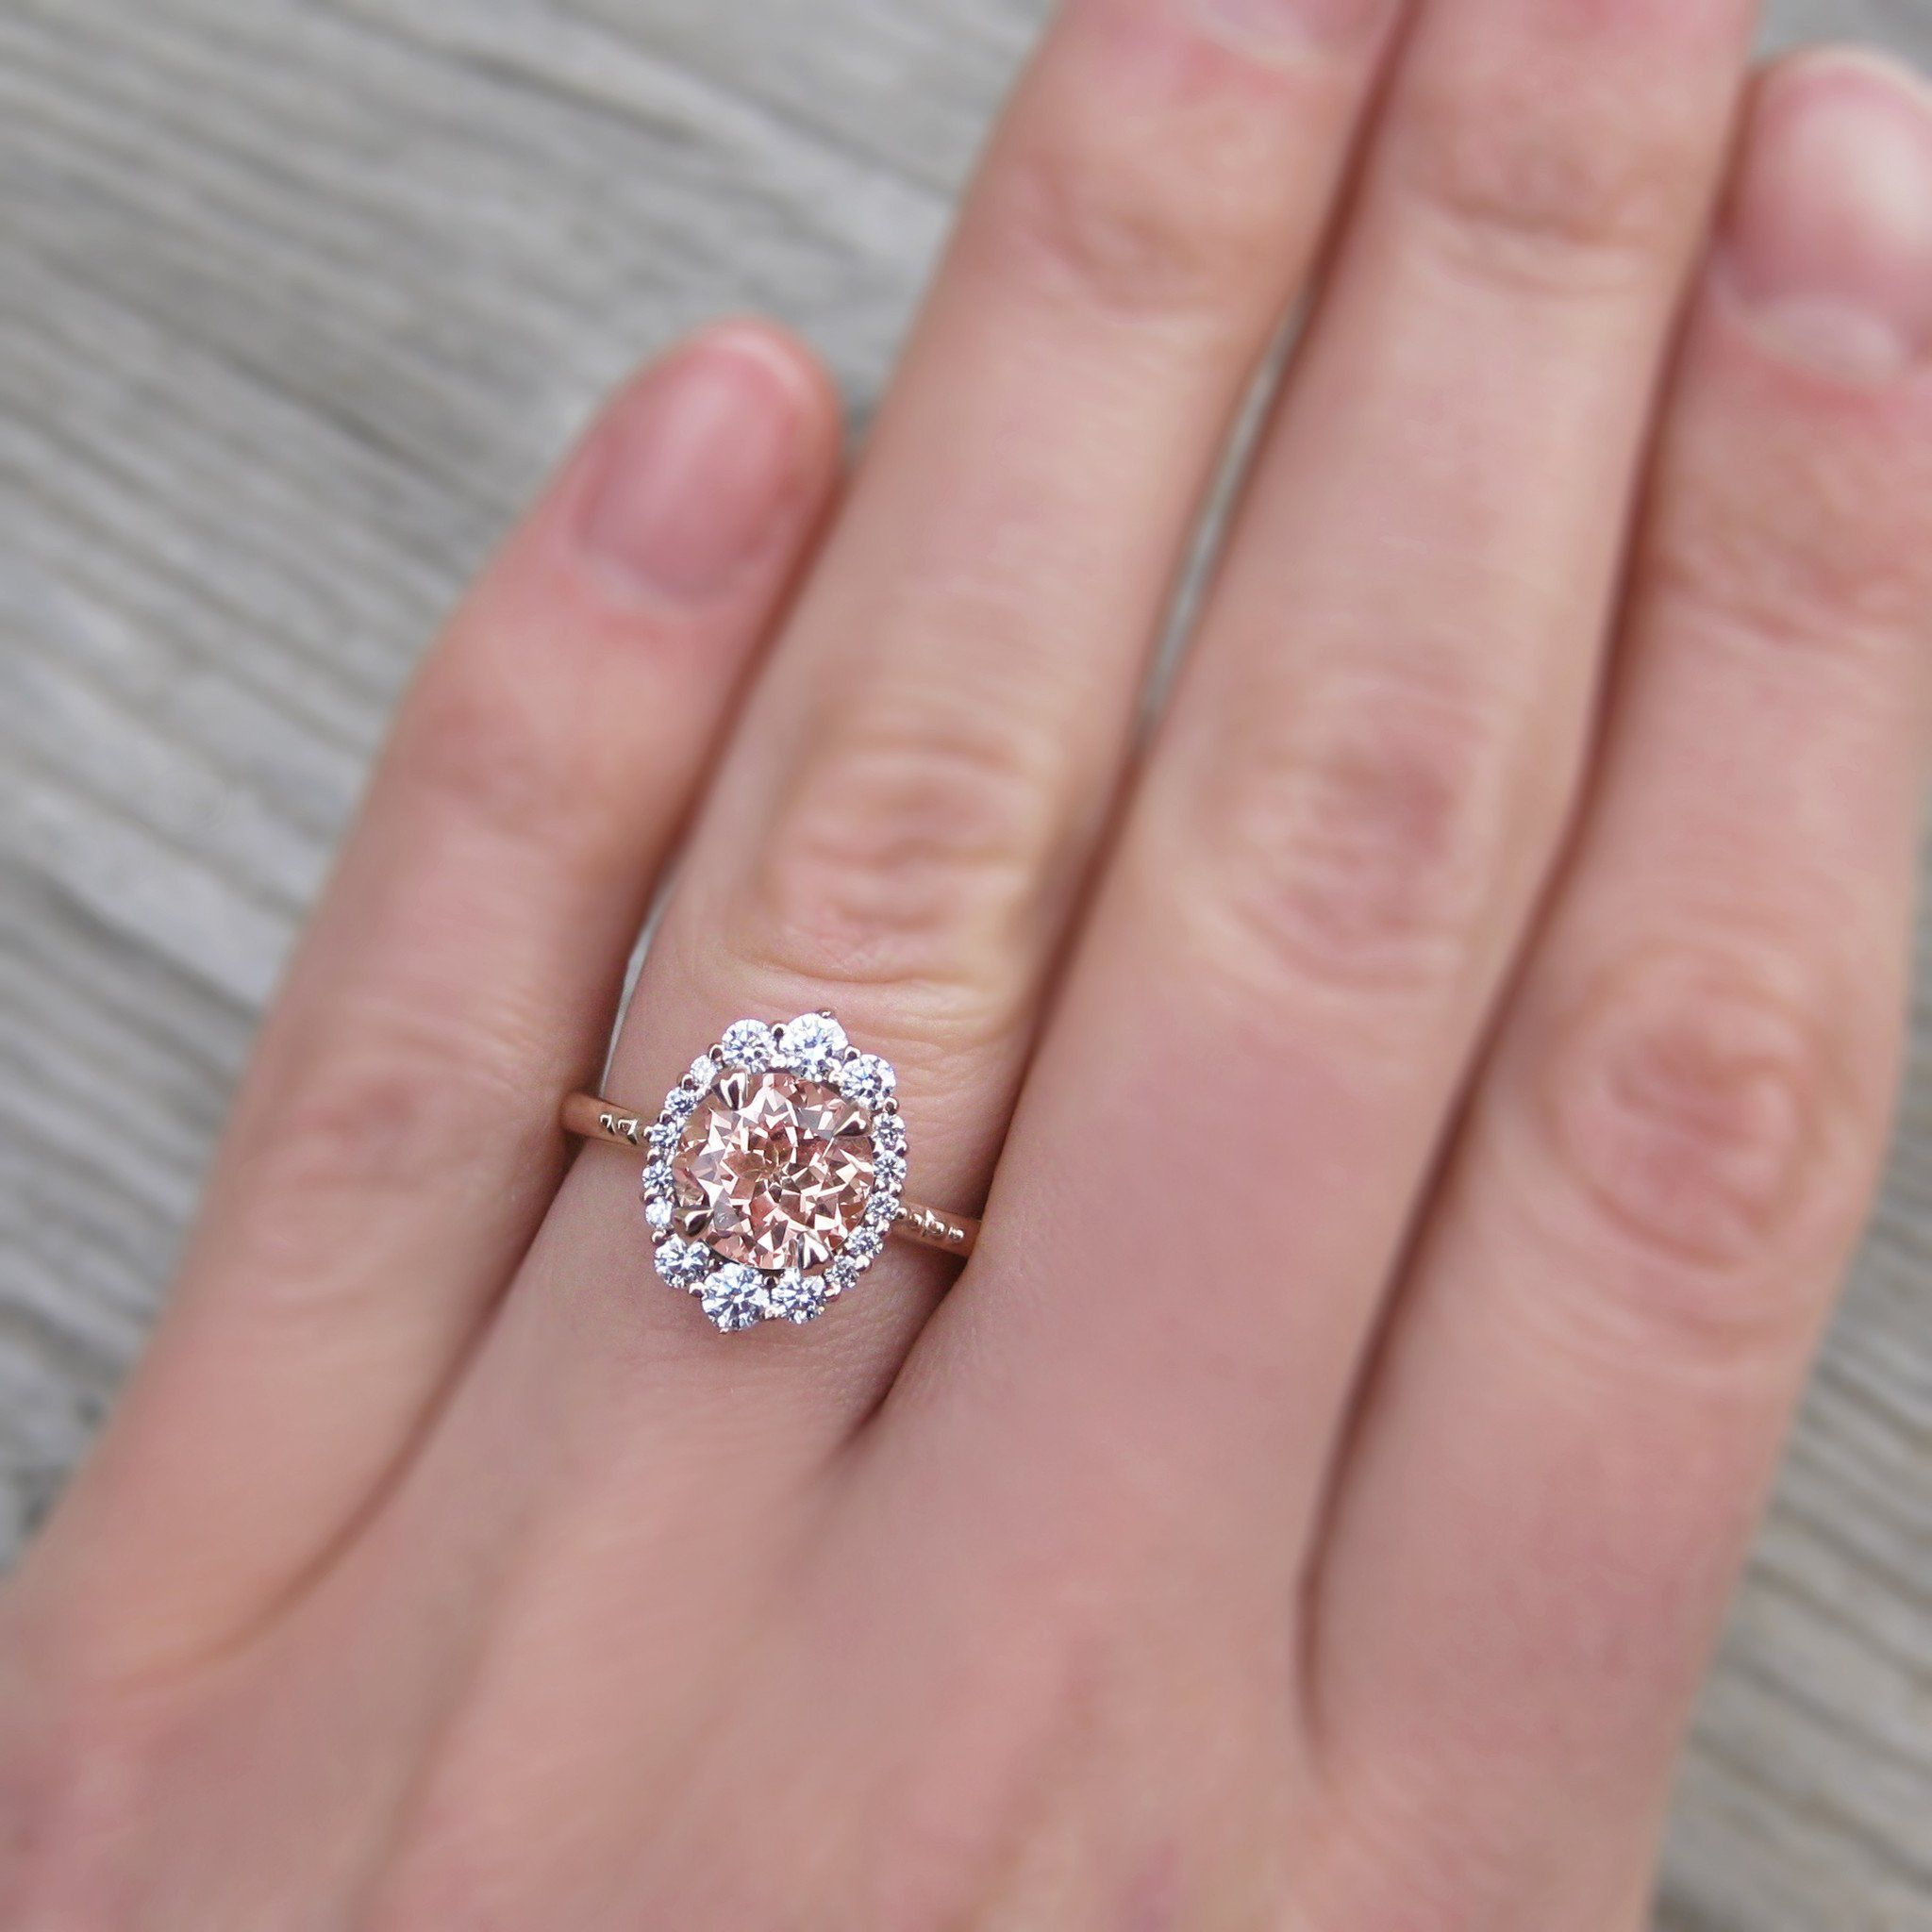 Peach Sapphire Engagement Ring with Diamond Halo (2.15ct)   Rings ...